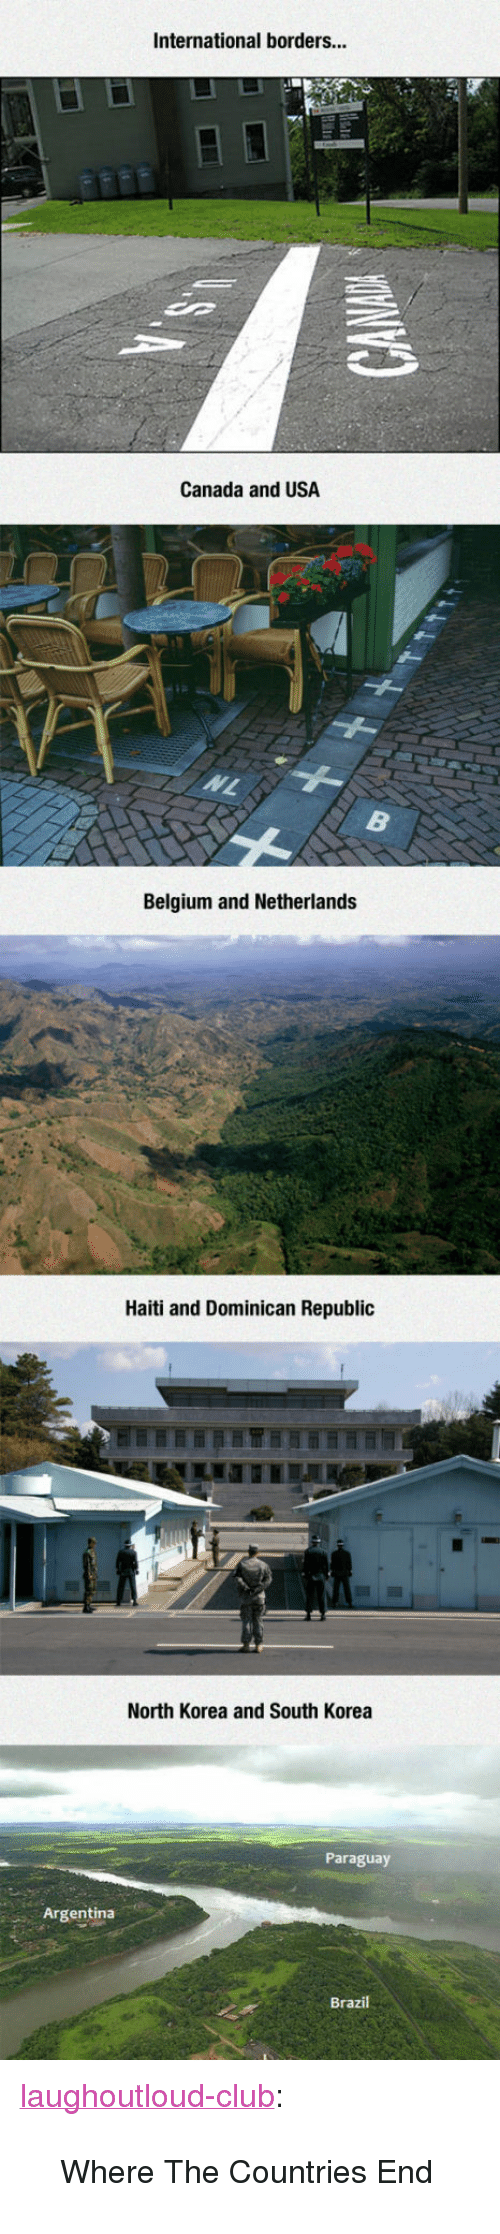 """Dominican: International borders...  Canada and USA  Belgium and Netherlands  Haiti and Dominican Republic  North Korea and South Korea  Paraguay  Argentina  Brazil <p><a href=""""http://laughoutloud-club.tumblr.com/post/171922817890/where-the-countries-end"""" class=""""tumblr_blog"""">laughoutloud-club</a>:</p>  <blockquote><p>Where The Countries End</p></blockquote>"""